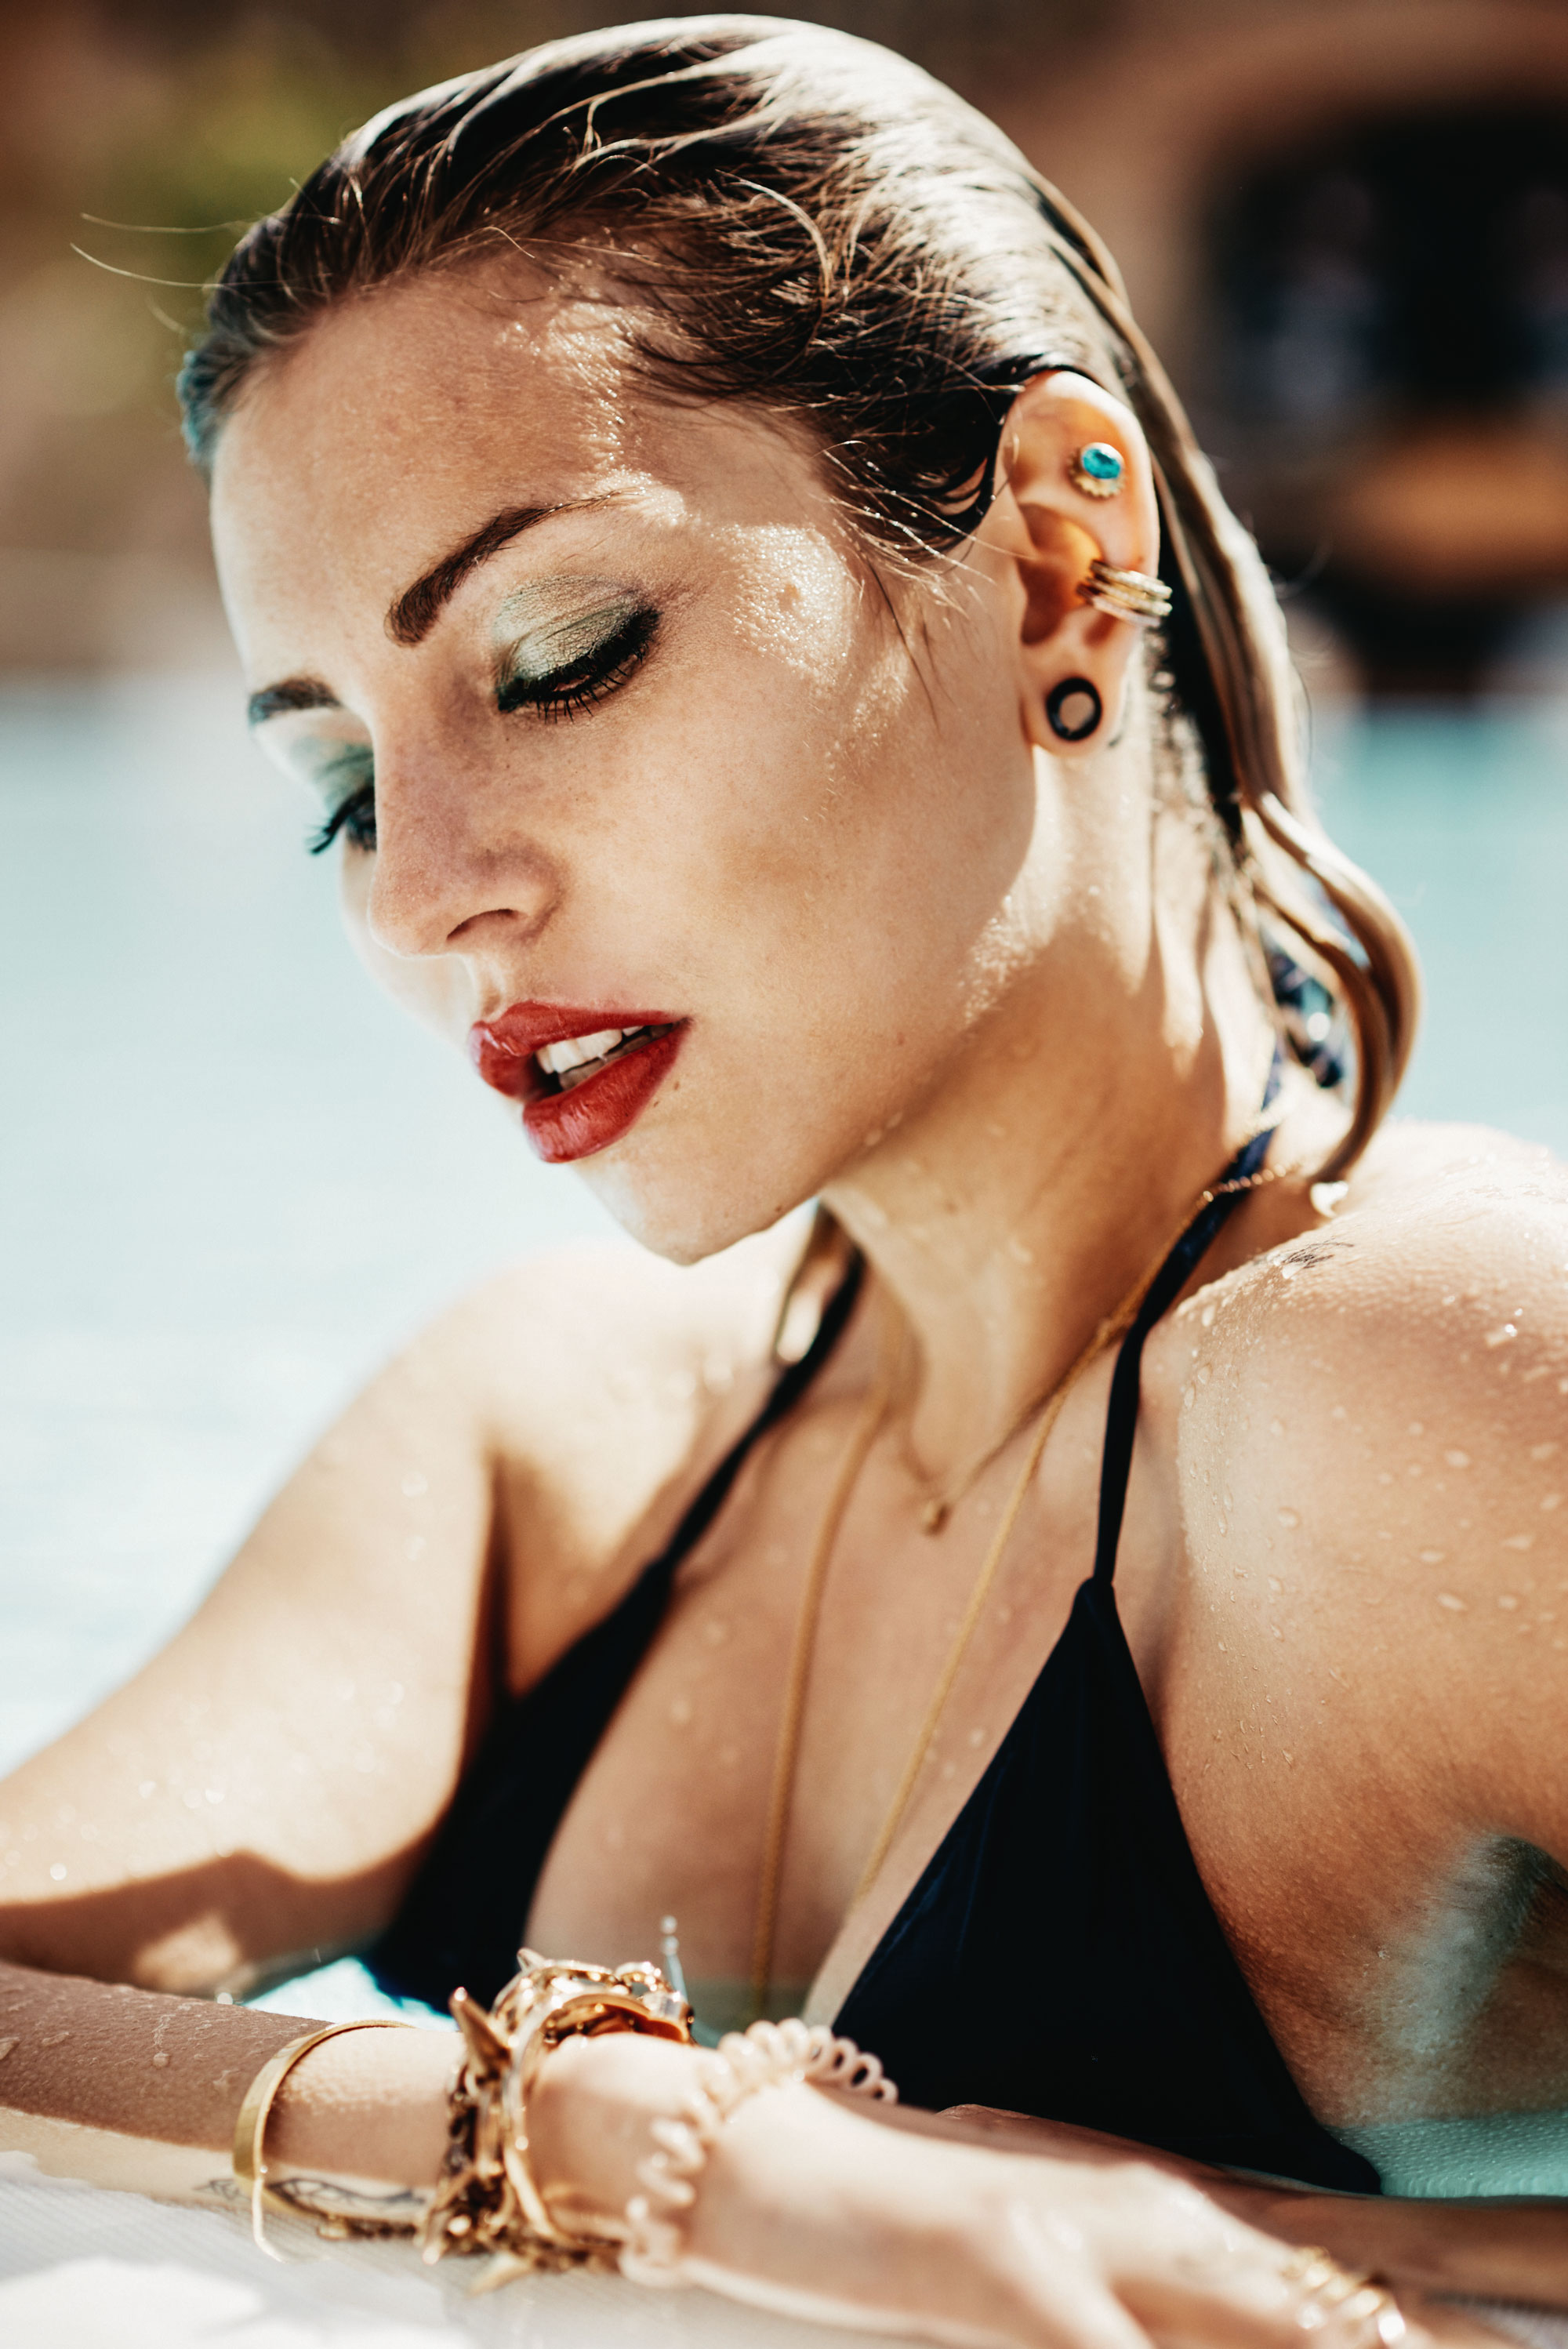 Pool Shooting | location: Haubentaucher, Berlin | YSL cosmetics waterproof | find more pictures on my blog